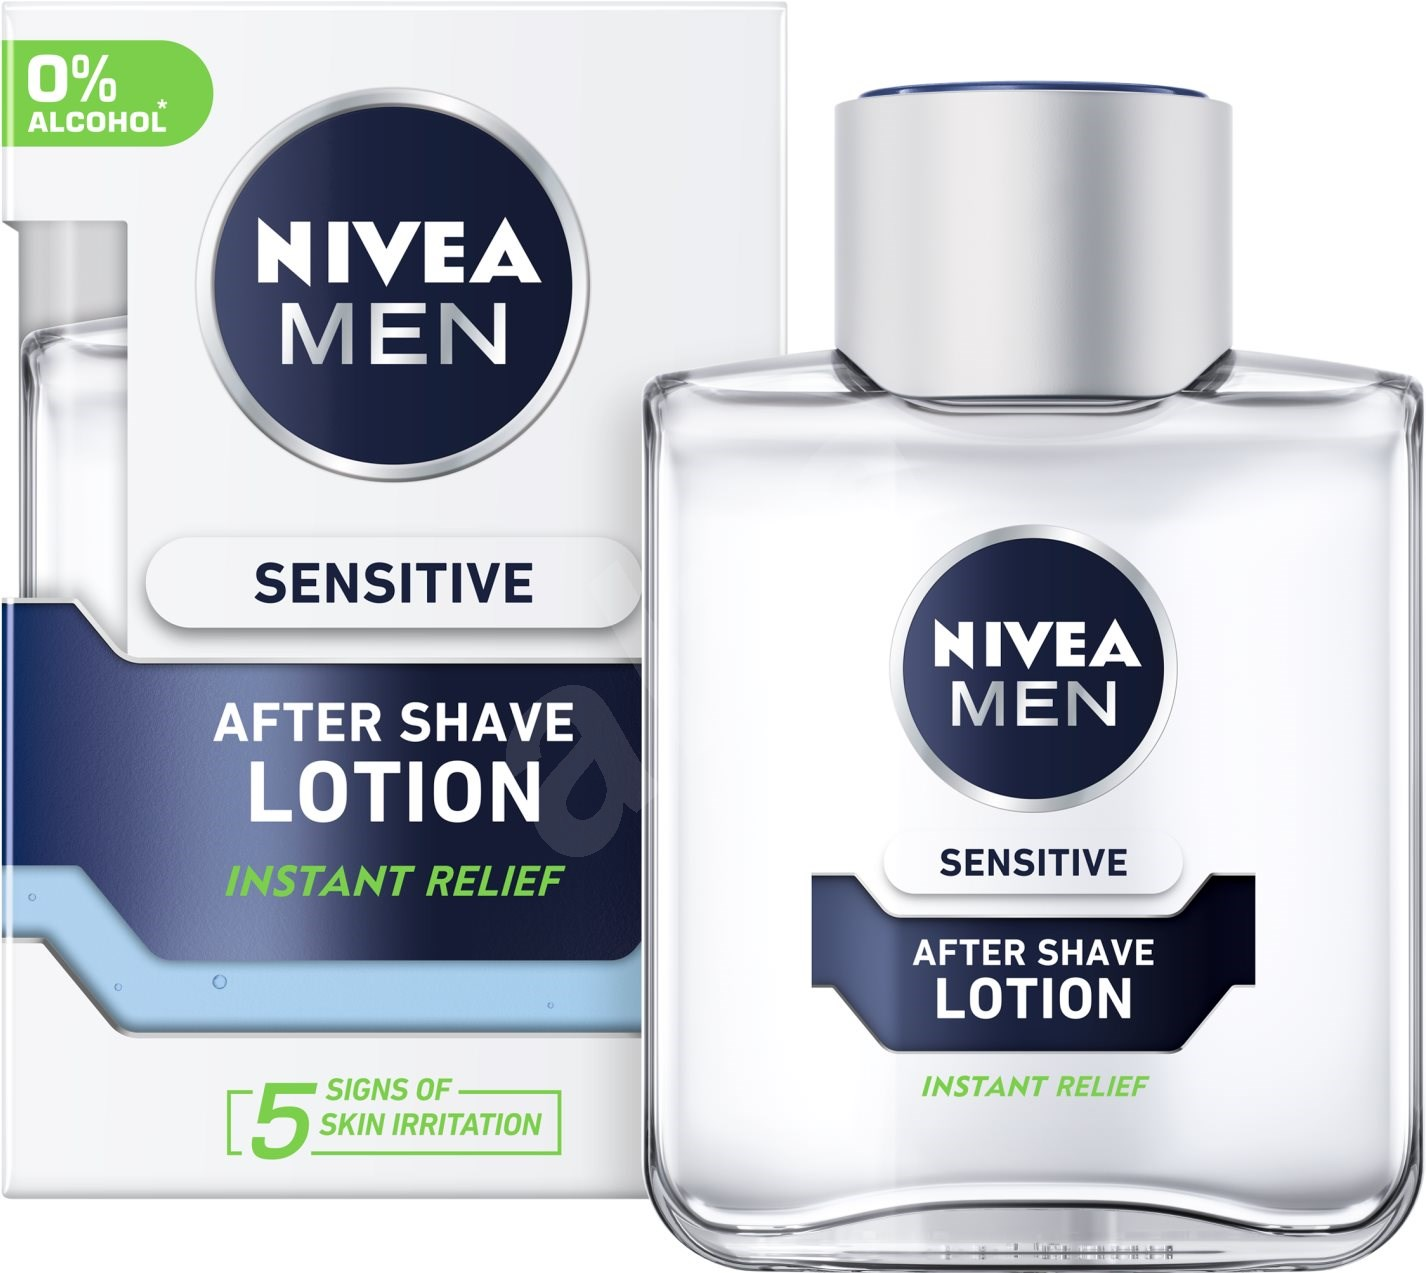 nivea for men developing a marketing